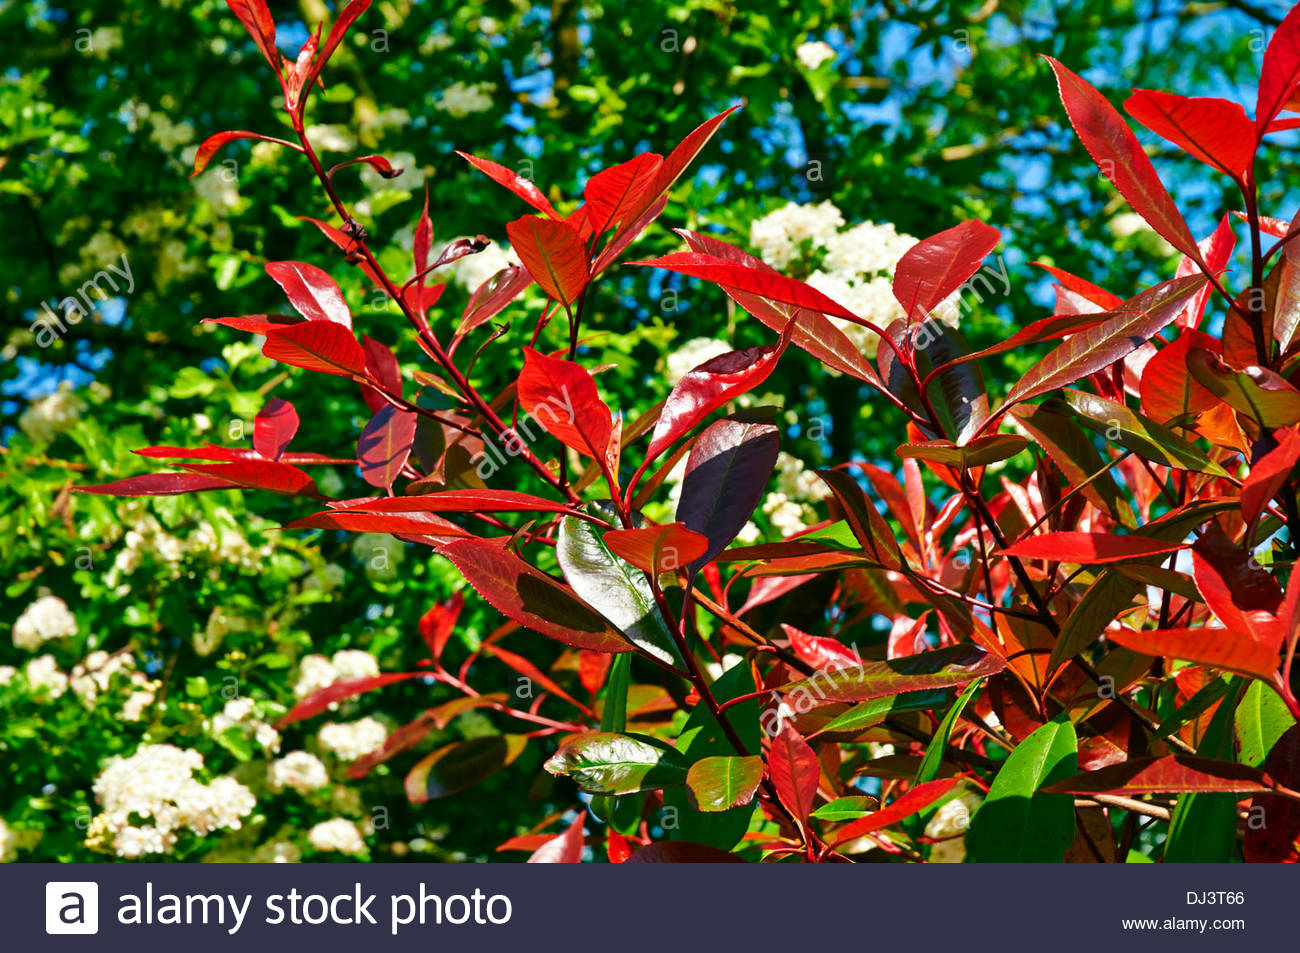 Photinia x fraseri 'Red Robin' against white blossom on a hawthorn tree - Stock Image